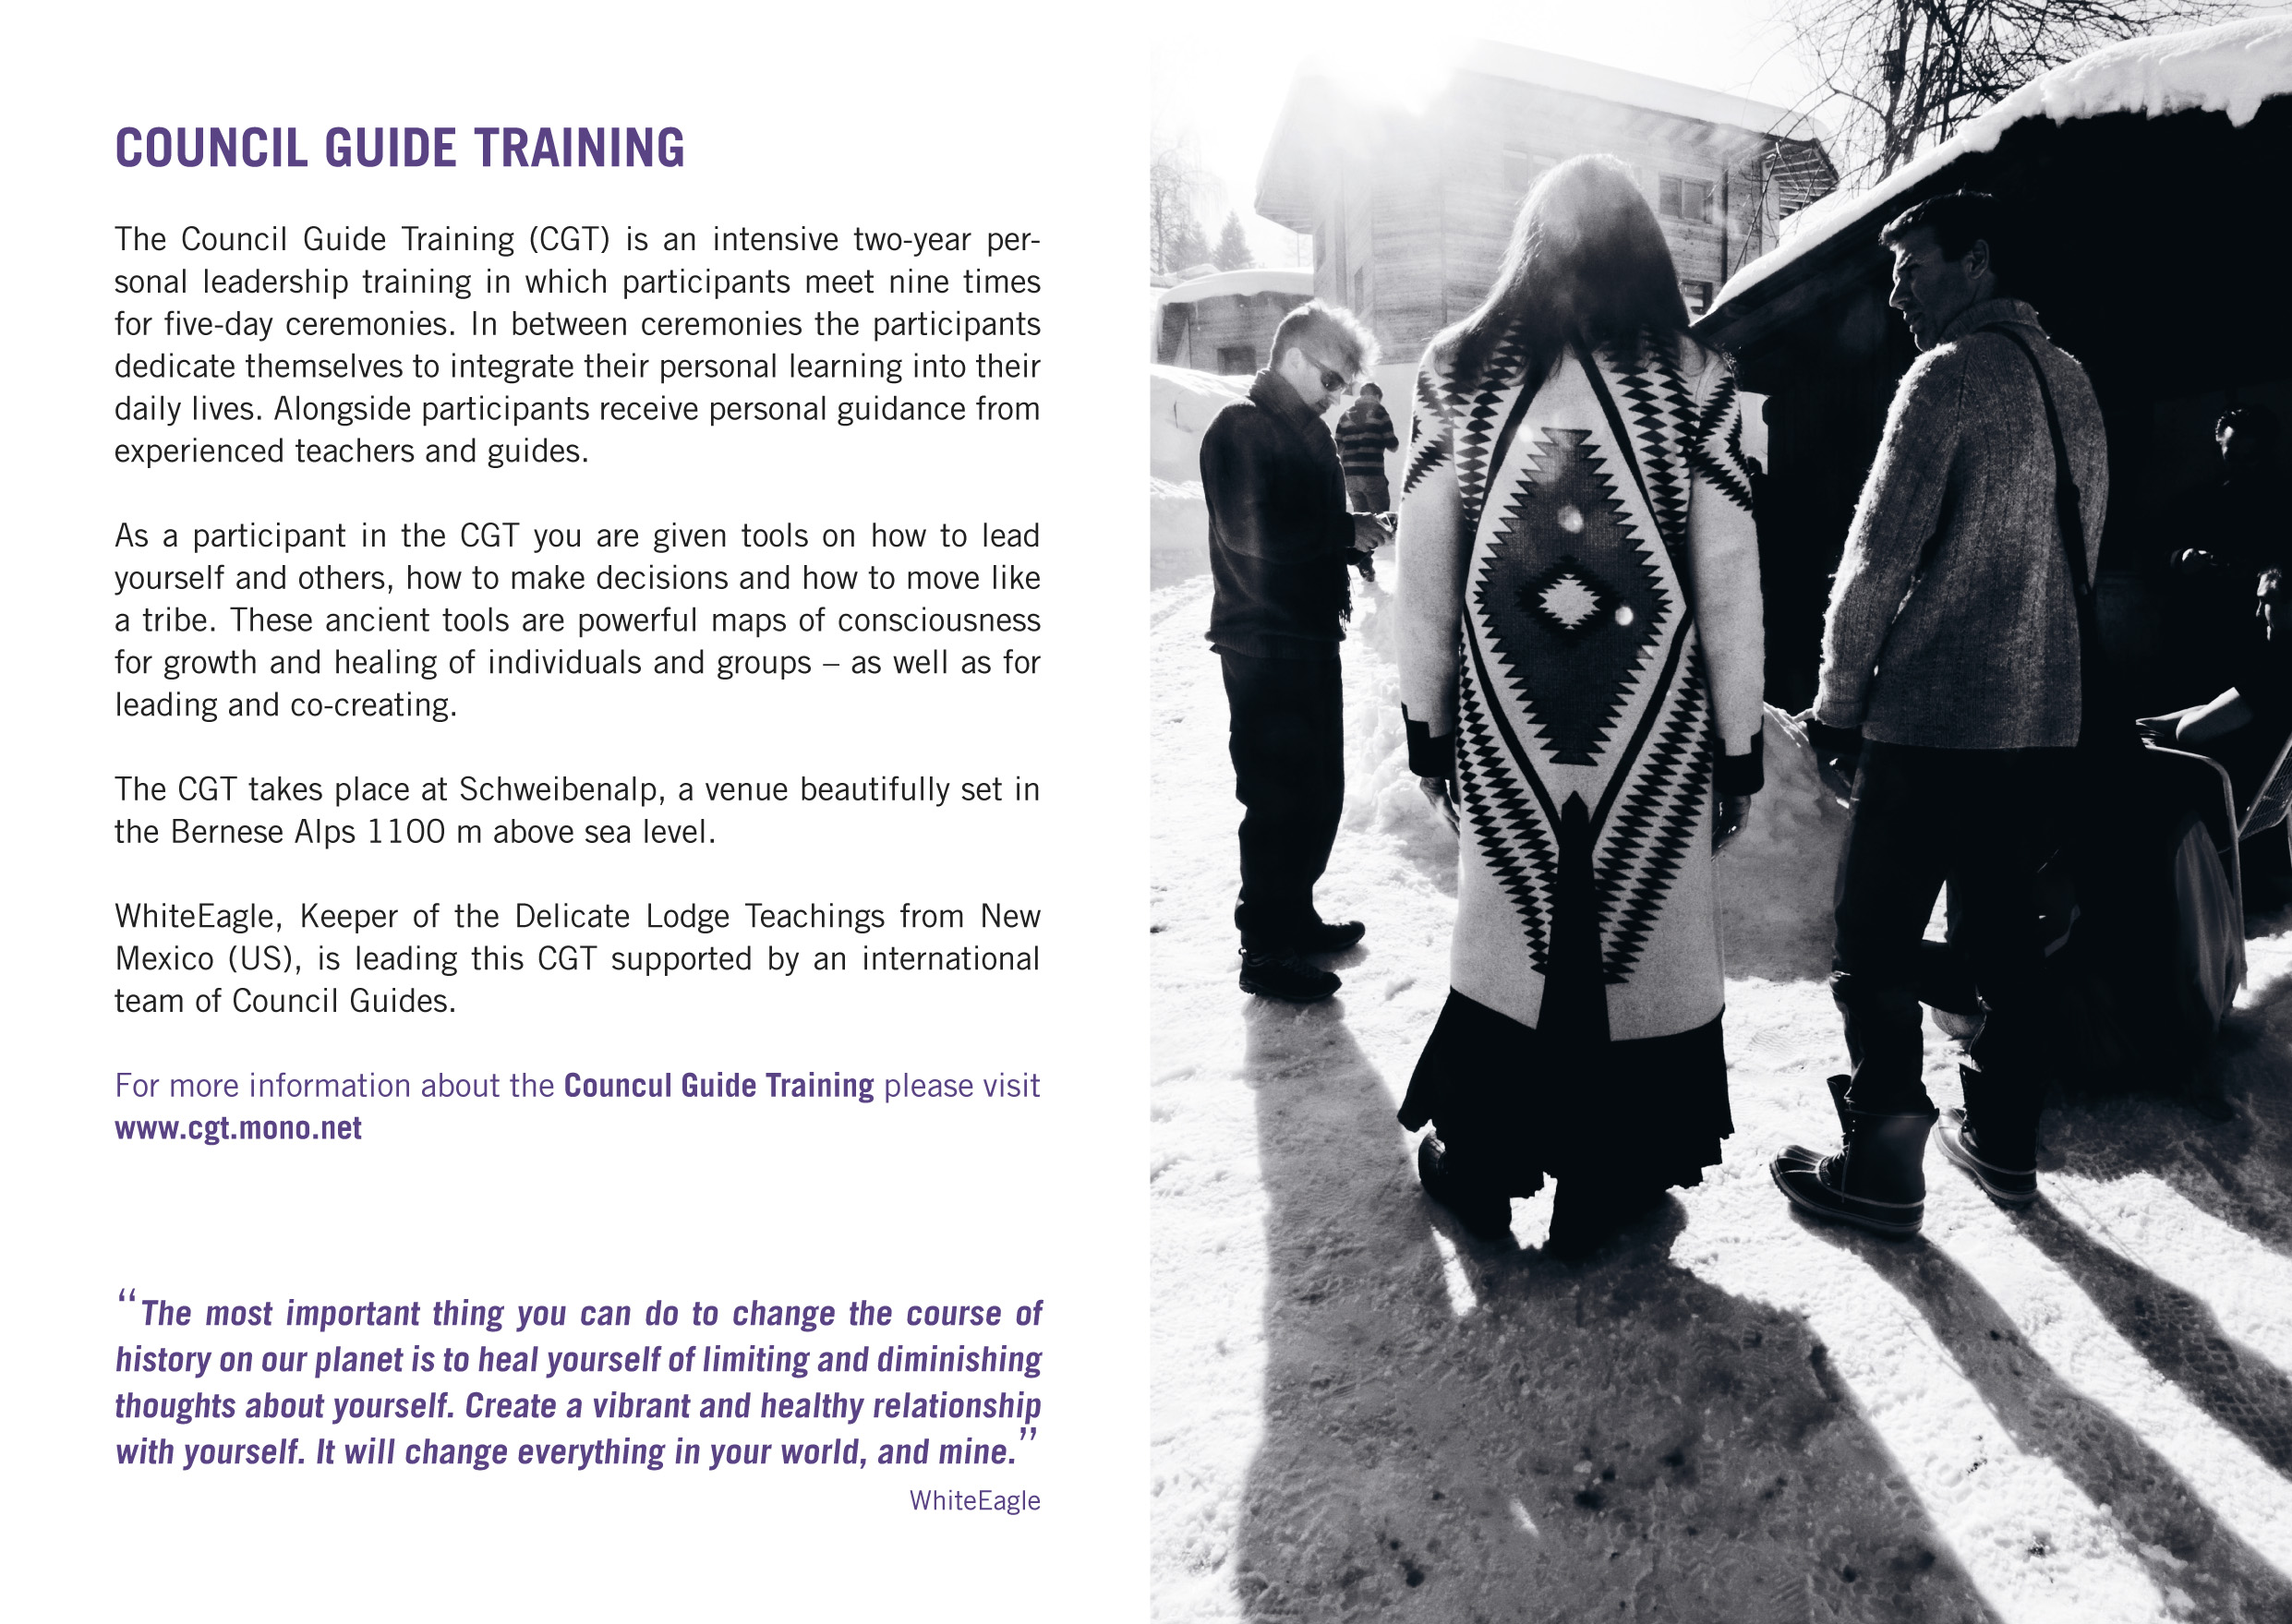 Council Guide Training  ©lowereast.dk